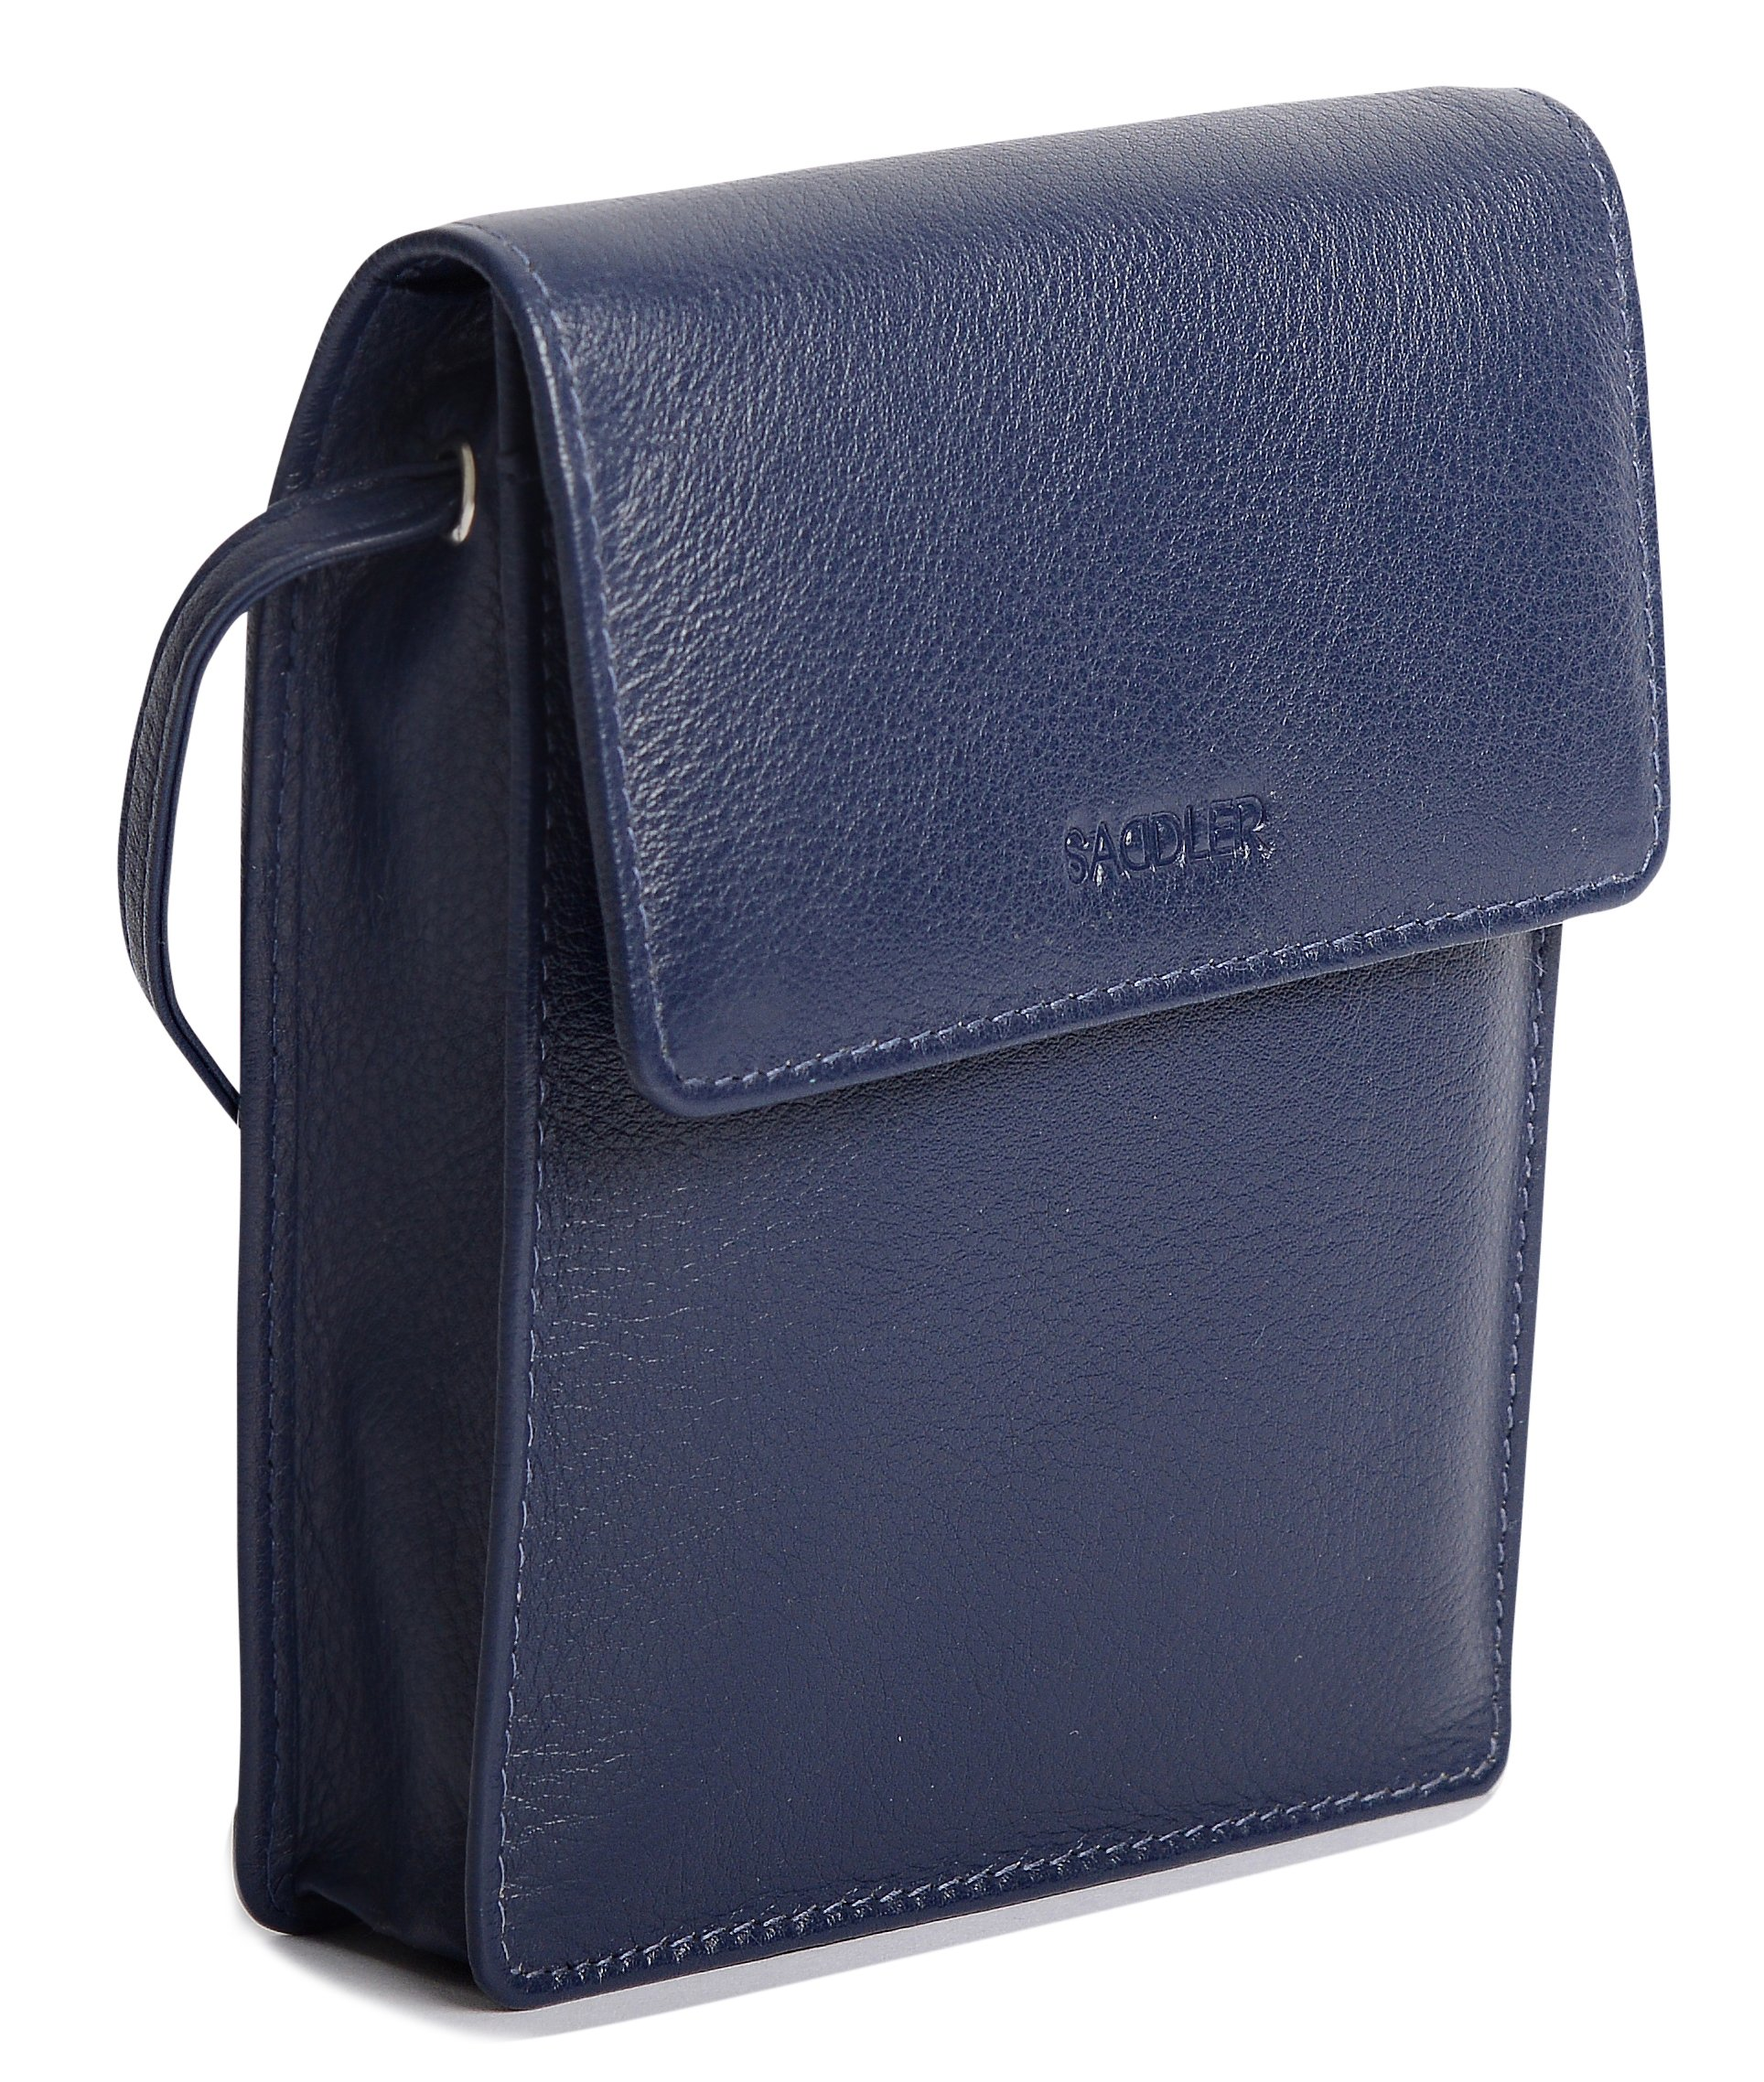 SADDLER Leather Cross Body Travel Passport Pouch - Card Holder - Peacoat Blue